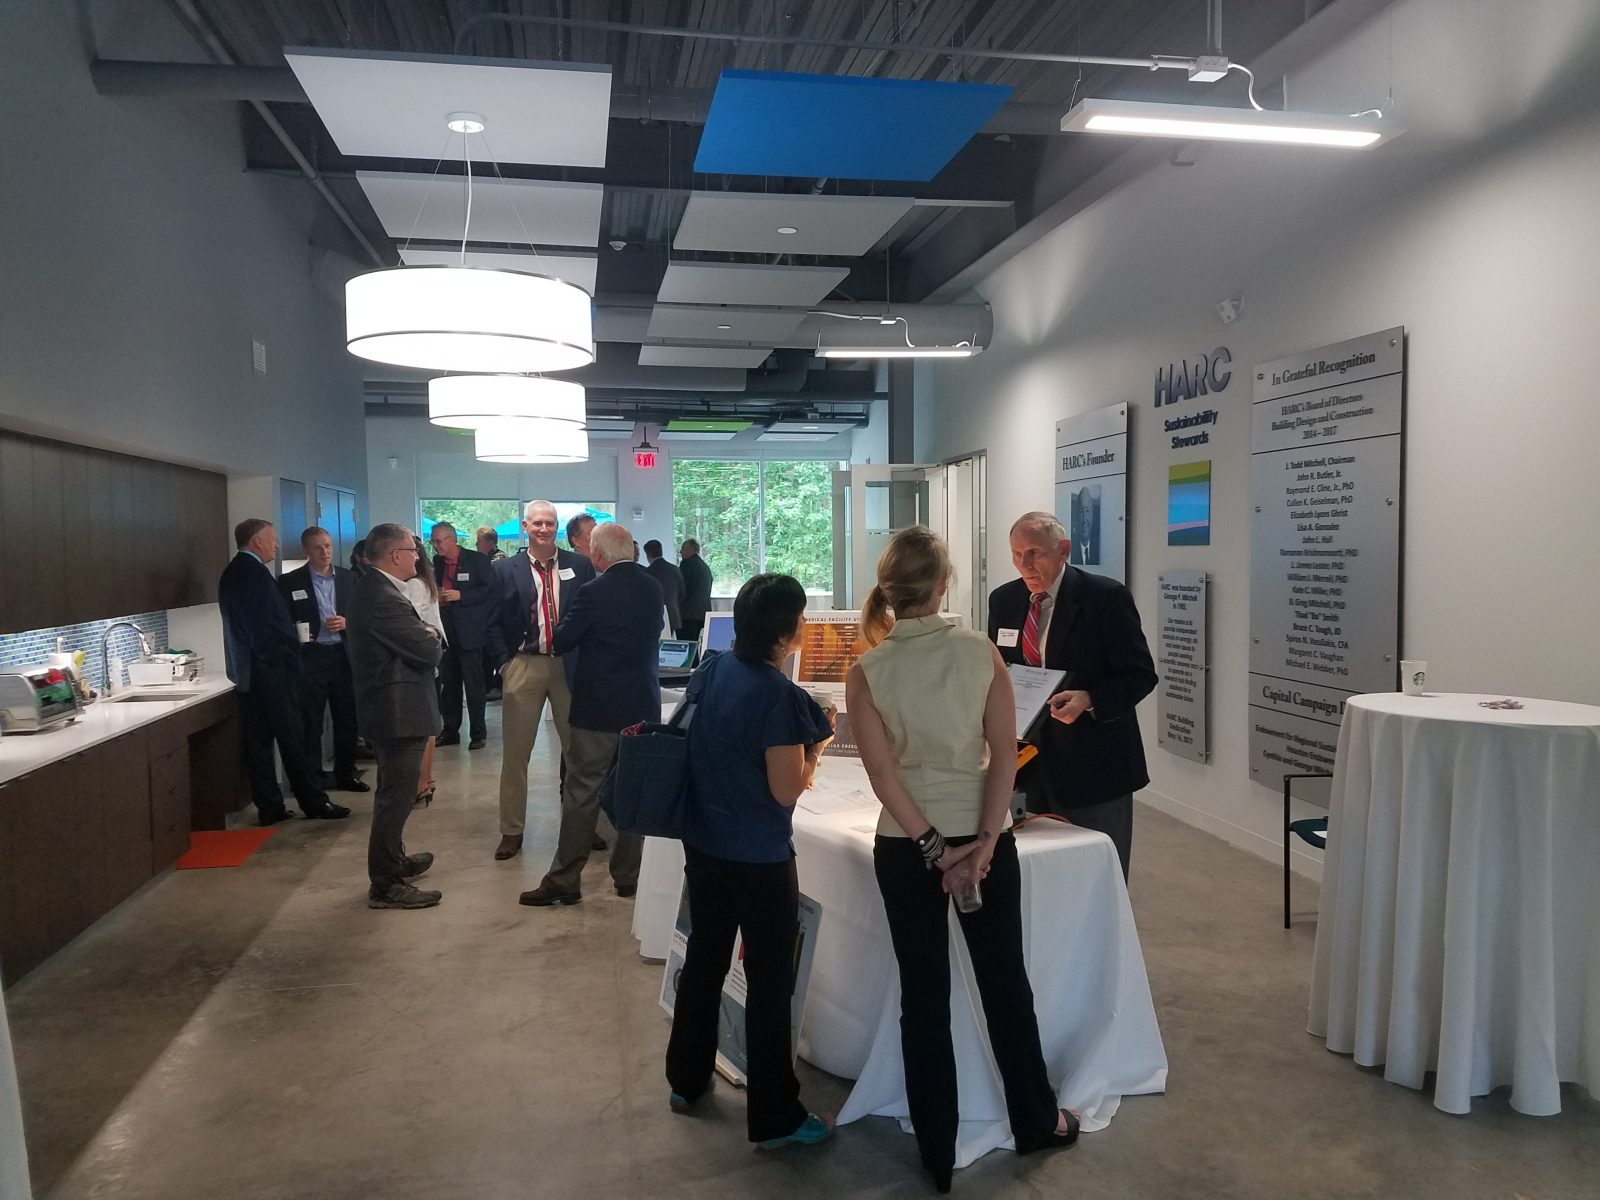 Guests gather around the small business exhibitors at the Industry Showcase.